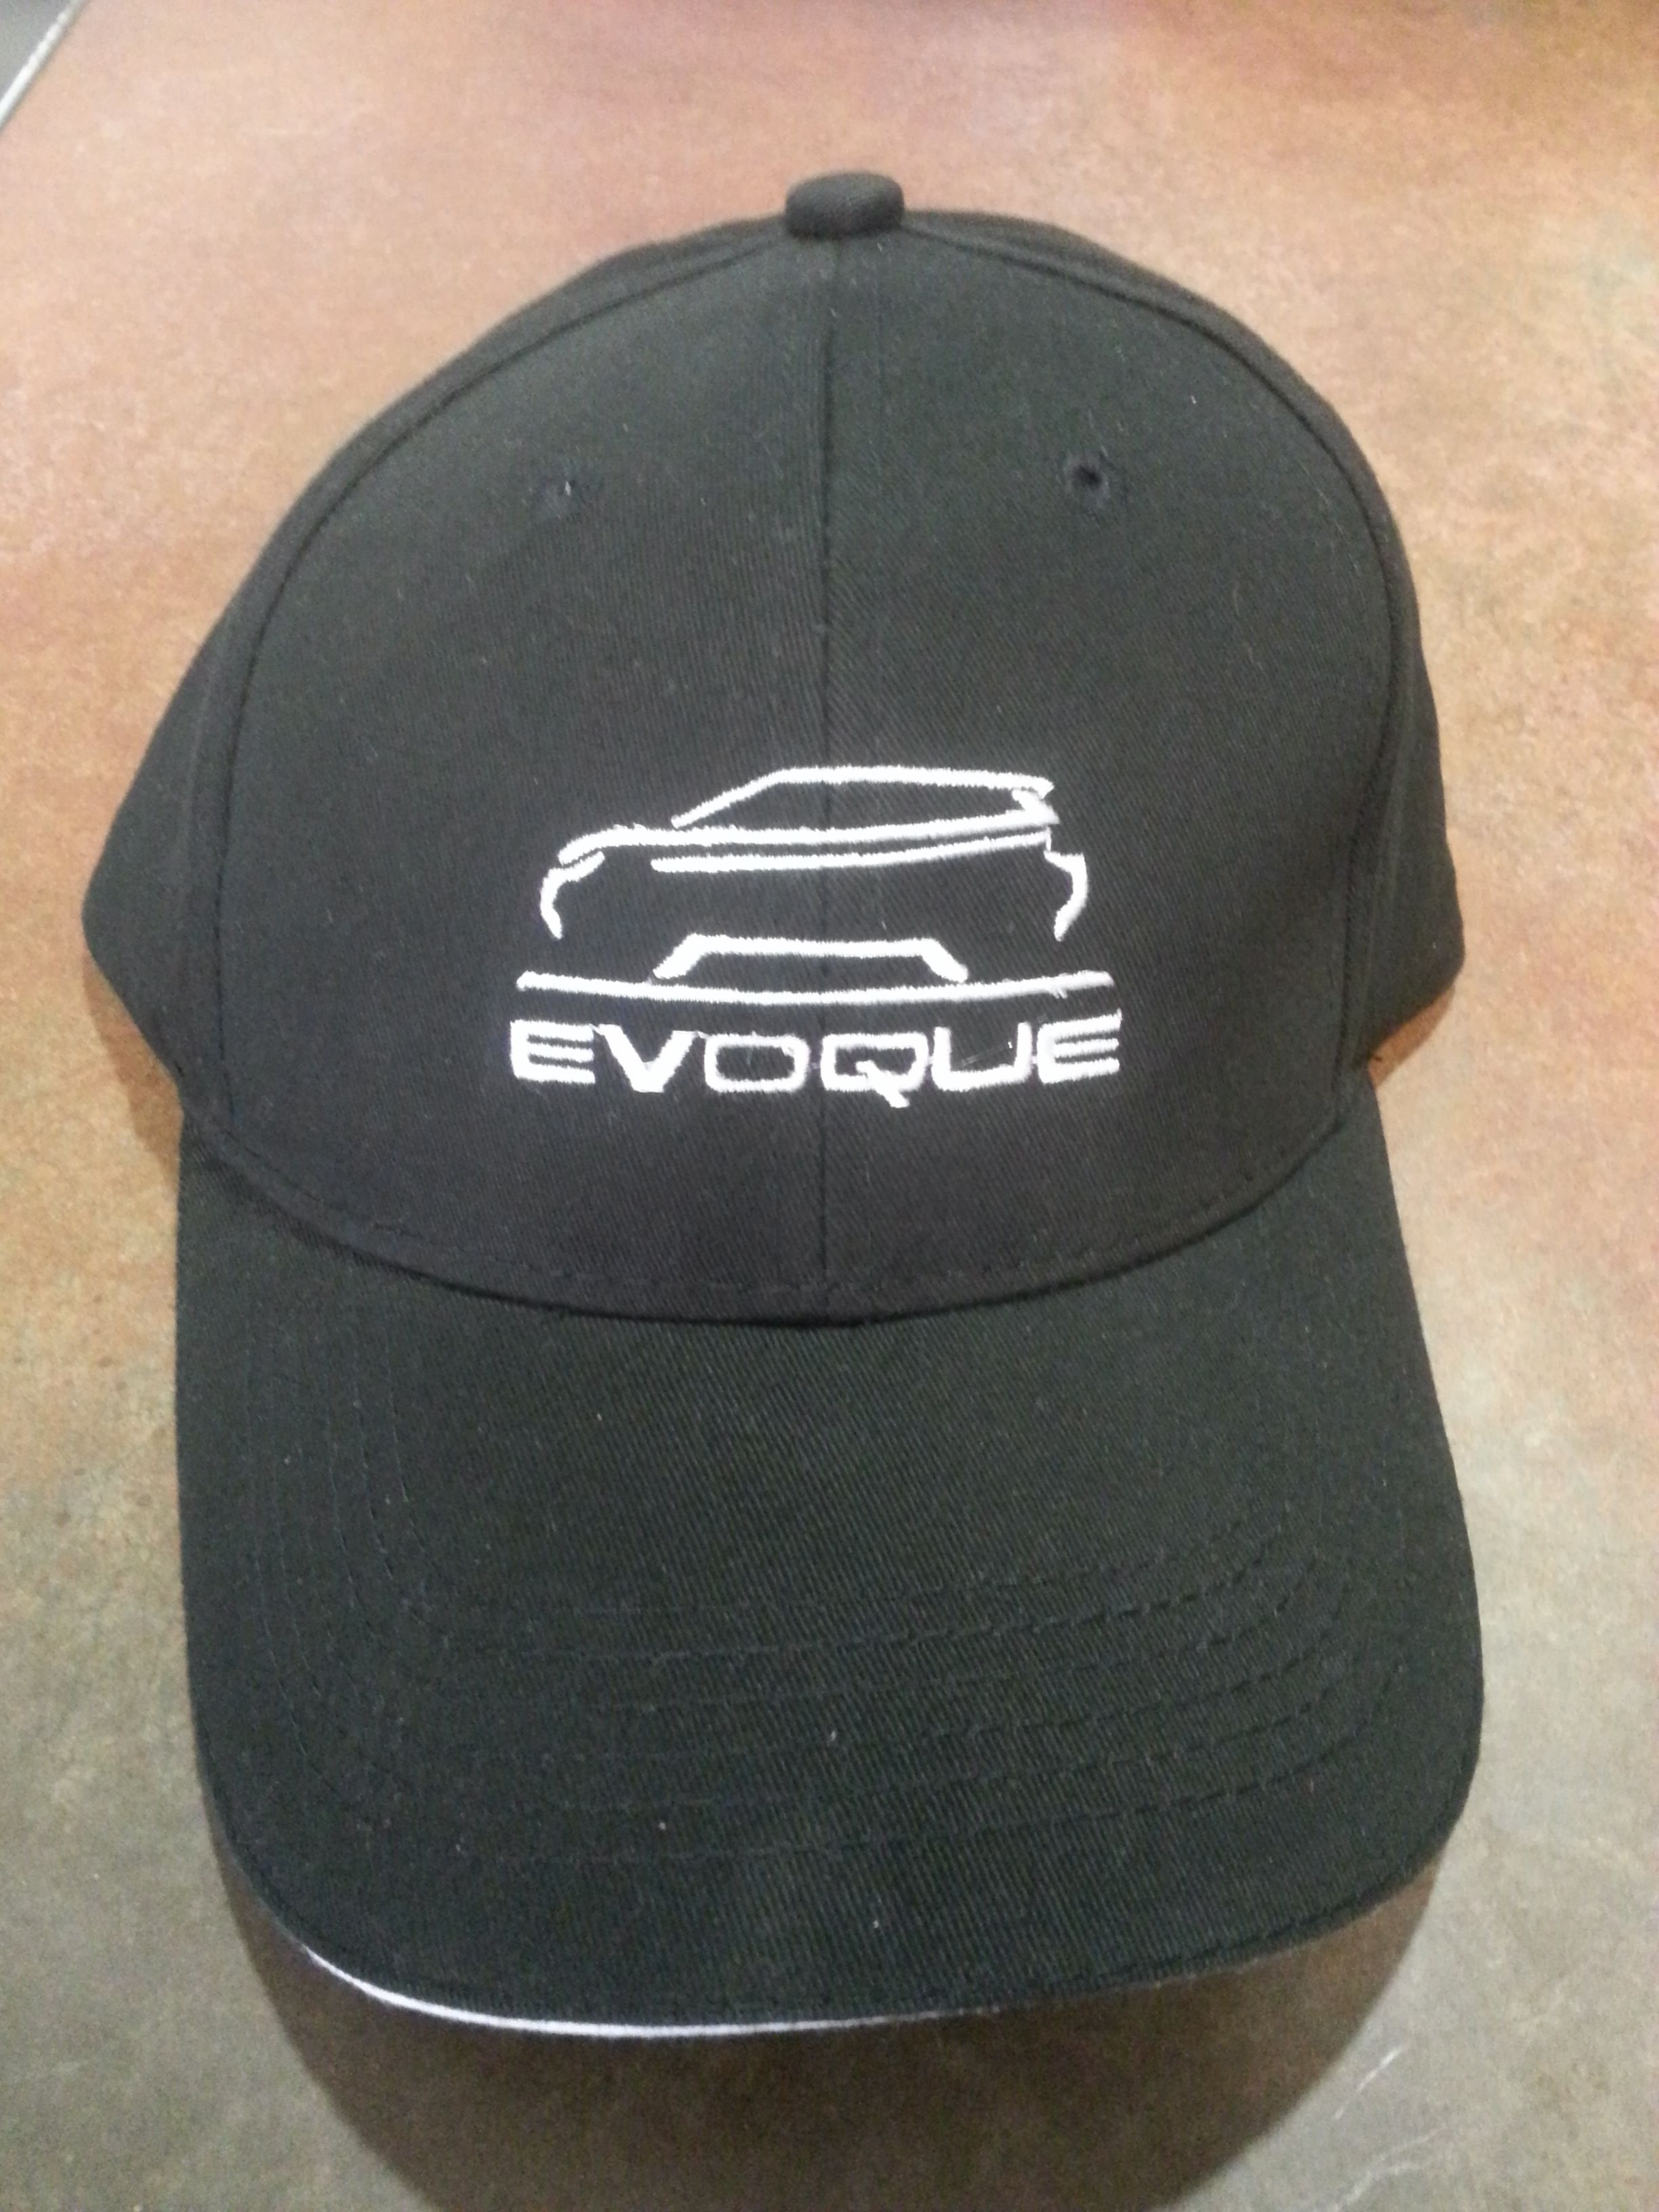 Range Rover Evoque Black with white Baseball Cap [pure-evoque-baseball-cap] - $22.00 : Range Rover Evoque Accessorie from Pure Evoque, Parts and Accessories for your Land Rover Range Rover Evoque